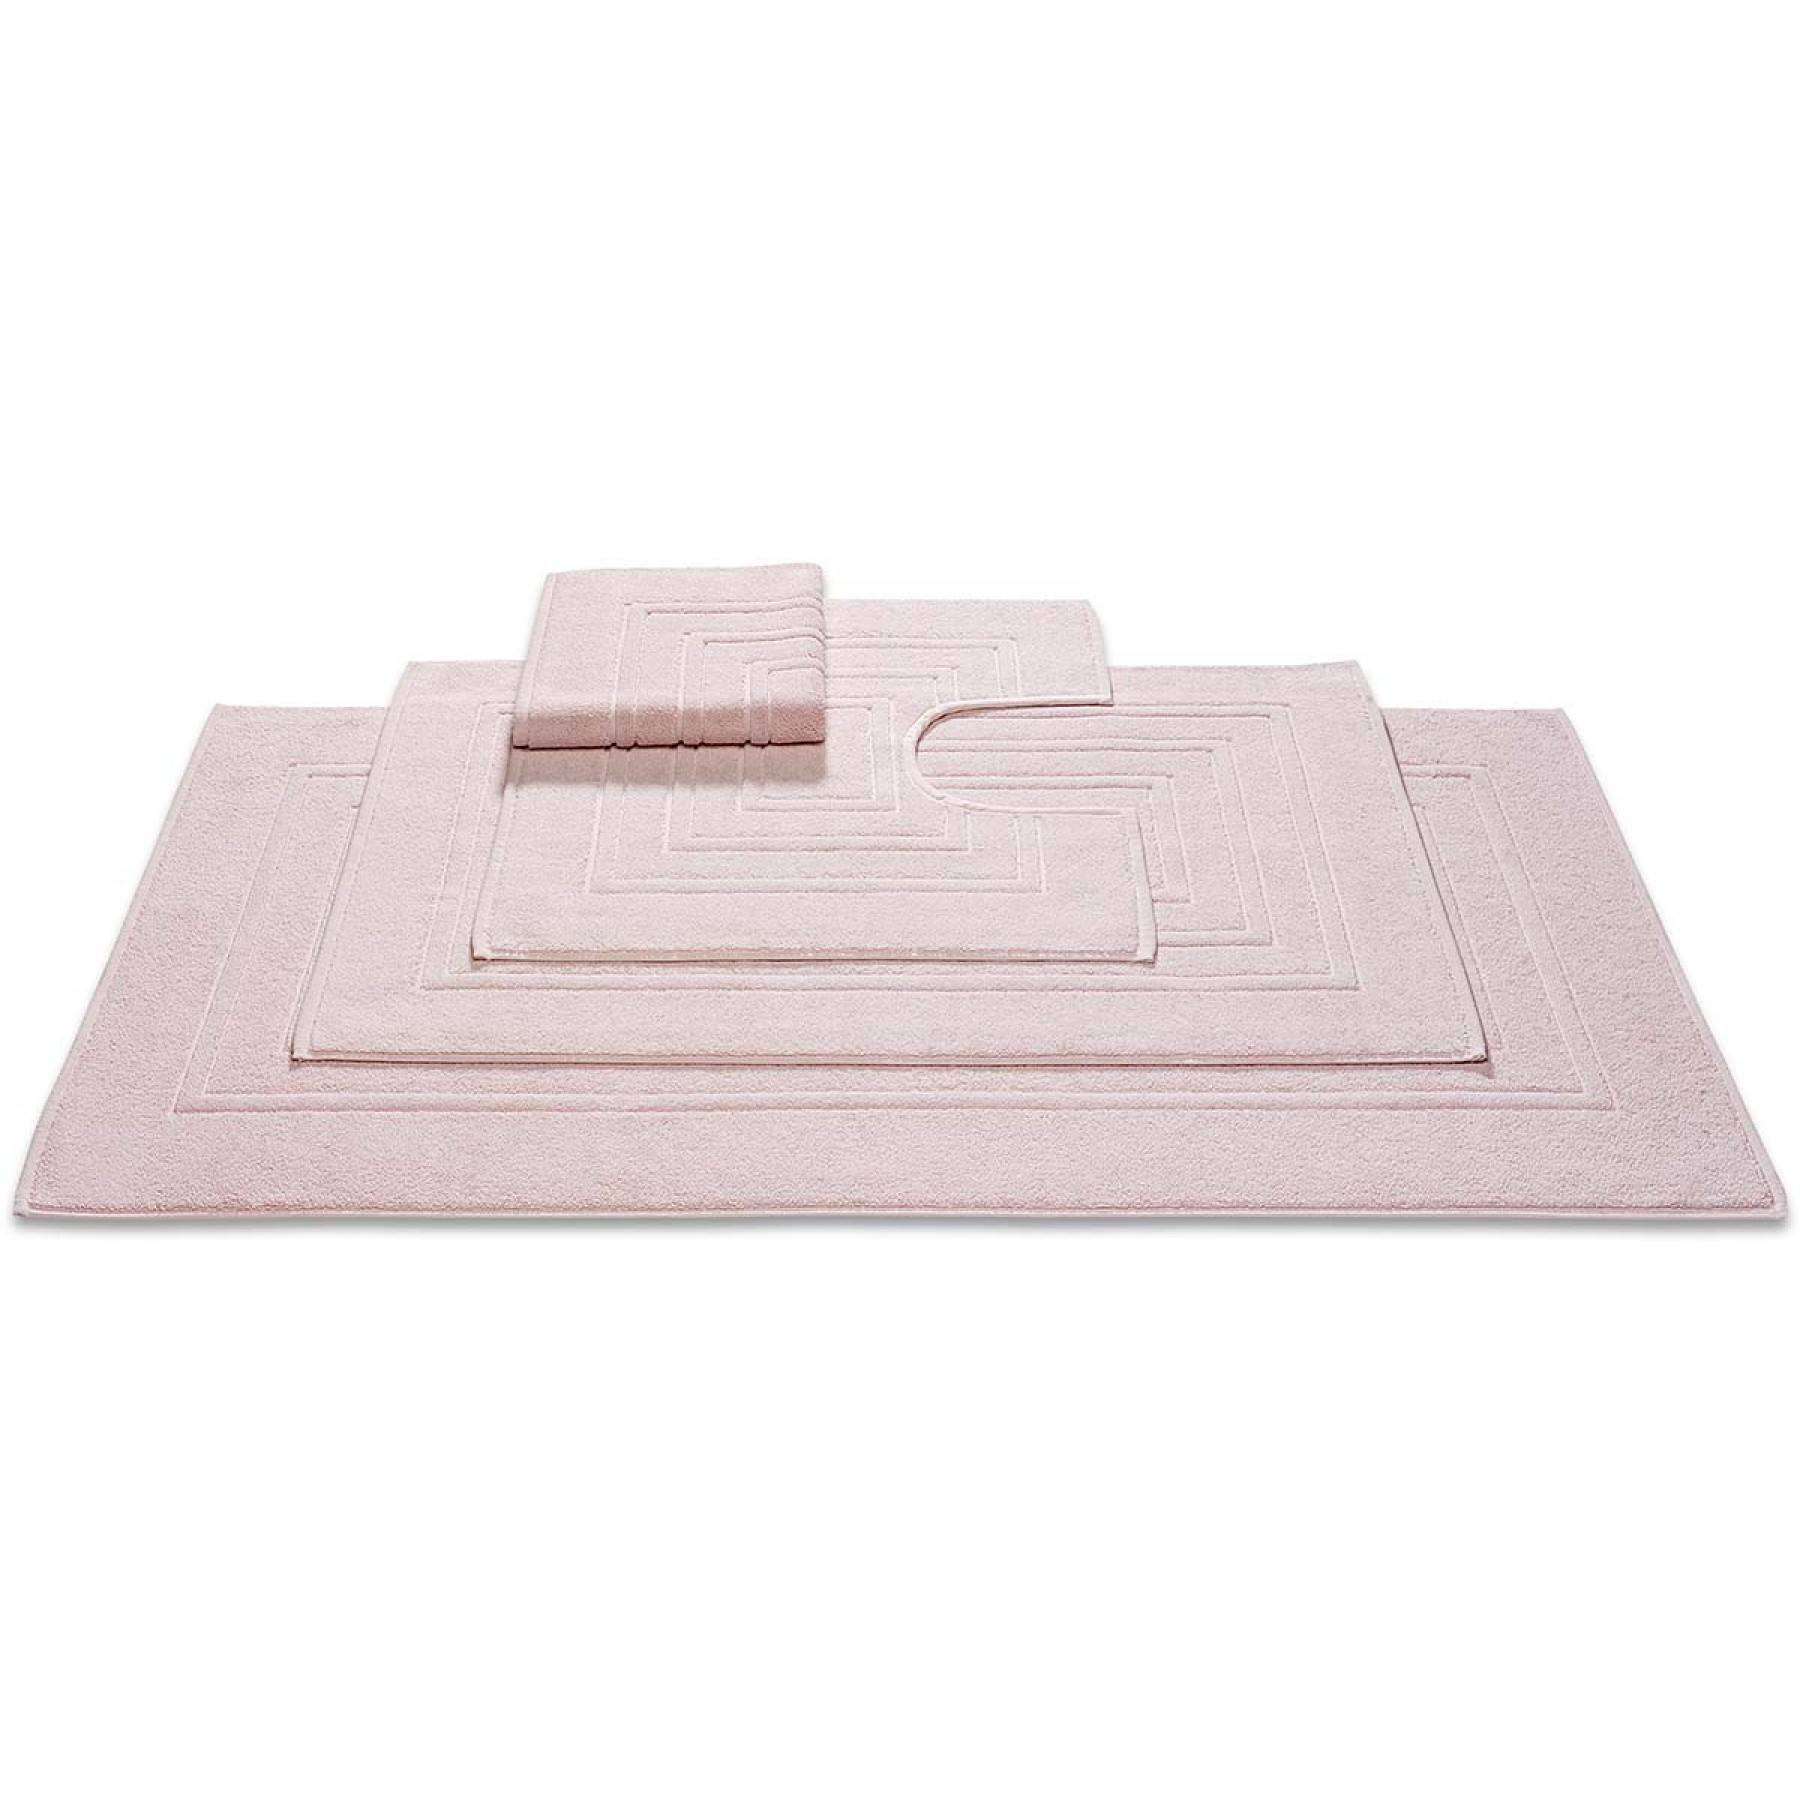 Vandyck Badmat Houston Powder Pink